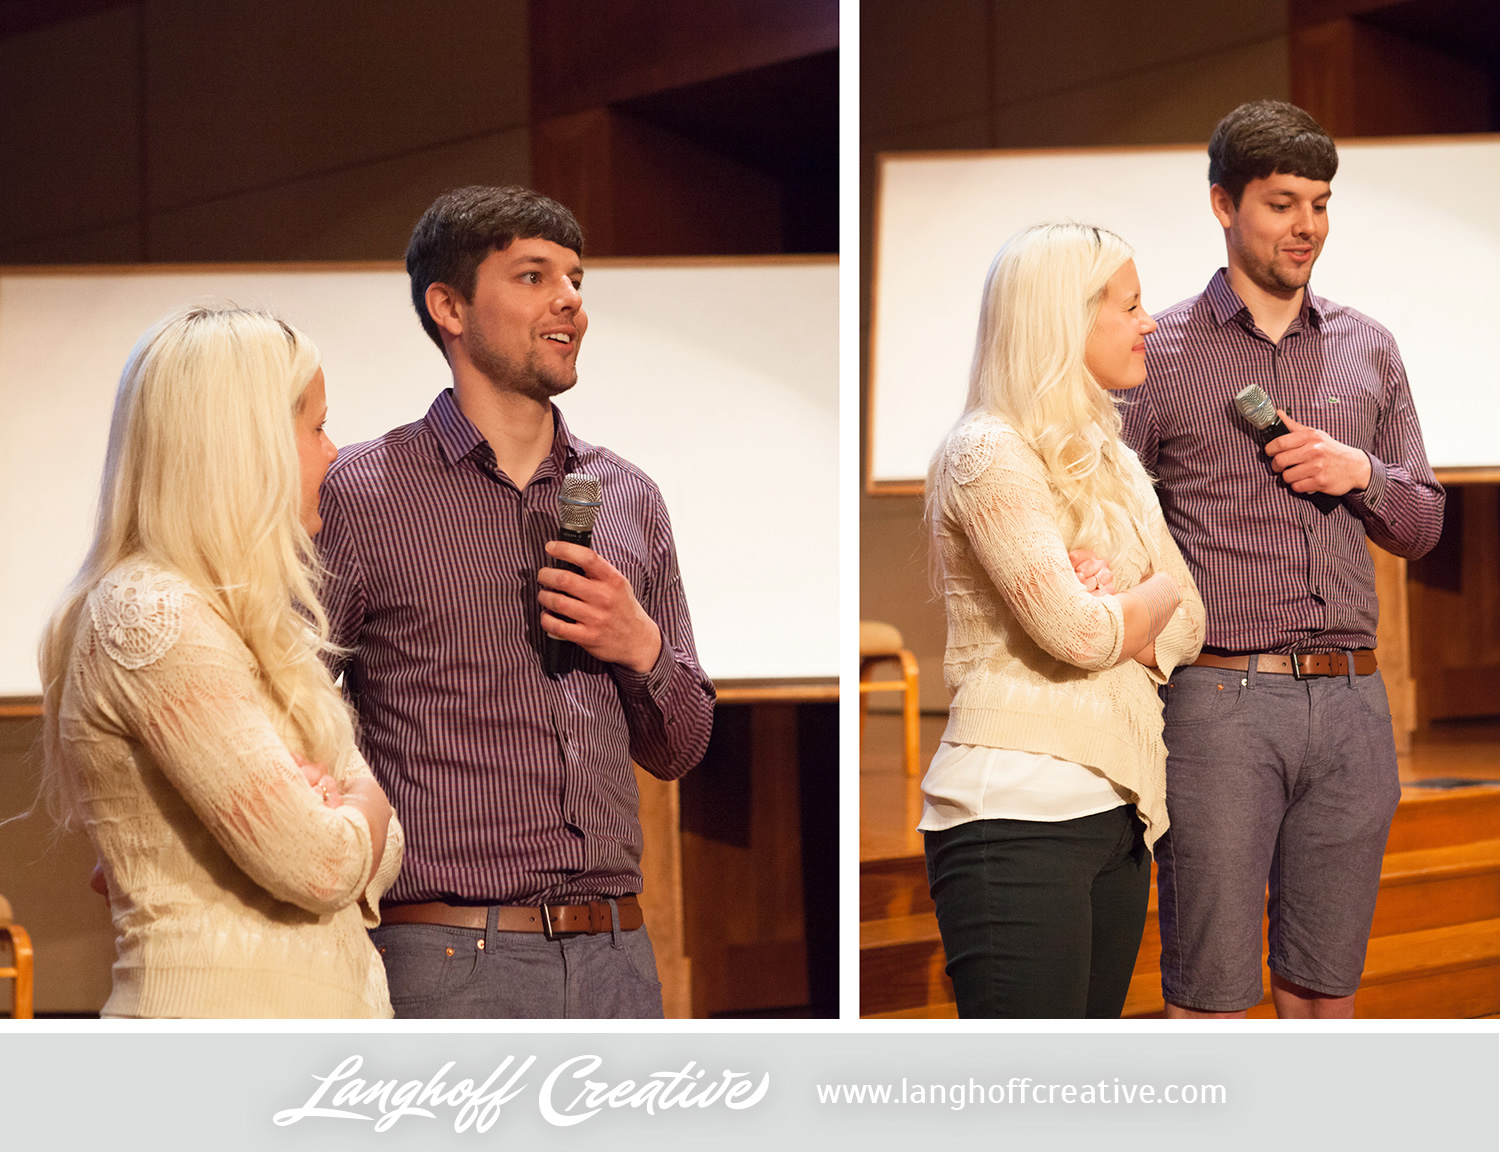 On the last morning, couples get a chance to stand up and share what they learned over the week and what God is doing in their life, business or marriage because of CONNECT. It was neat to hear from Caleb (engaged to Maison) as he thanked all of the couples they had met for showing them what marriage can look like and how to work together in business.